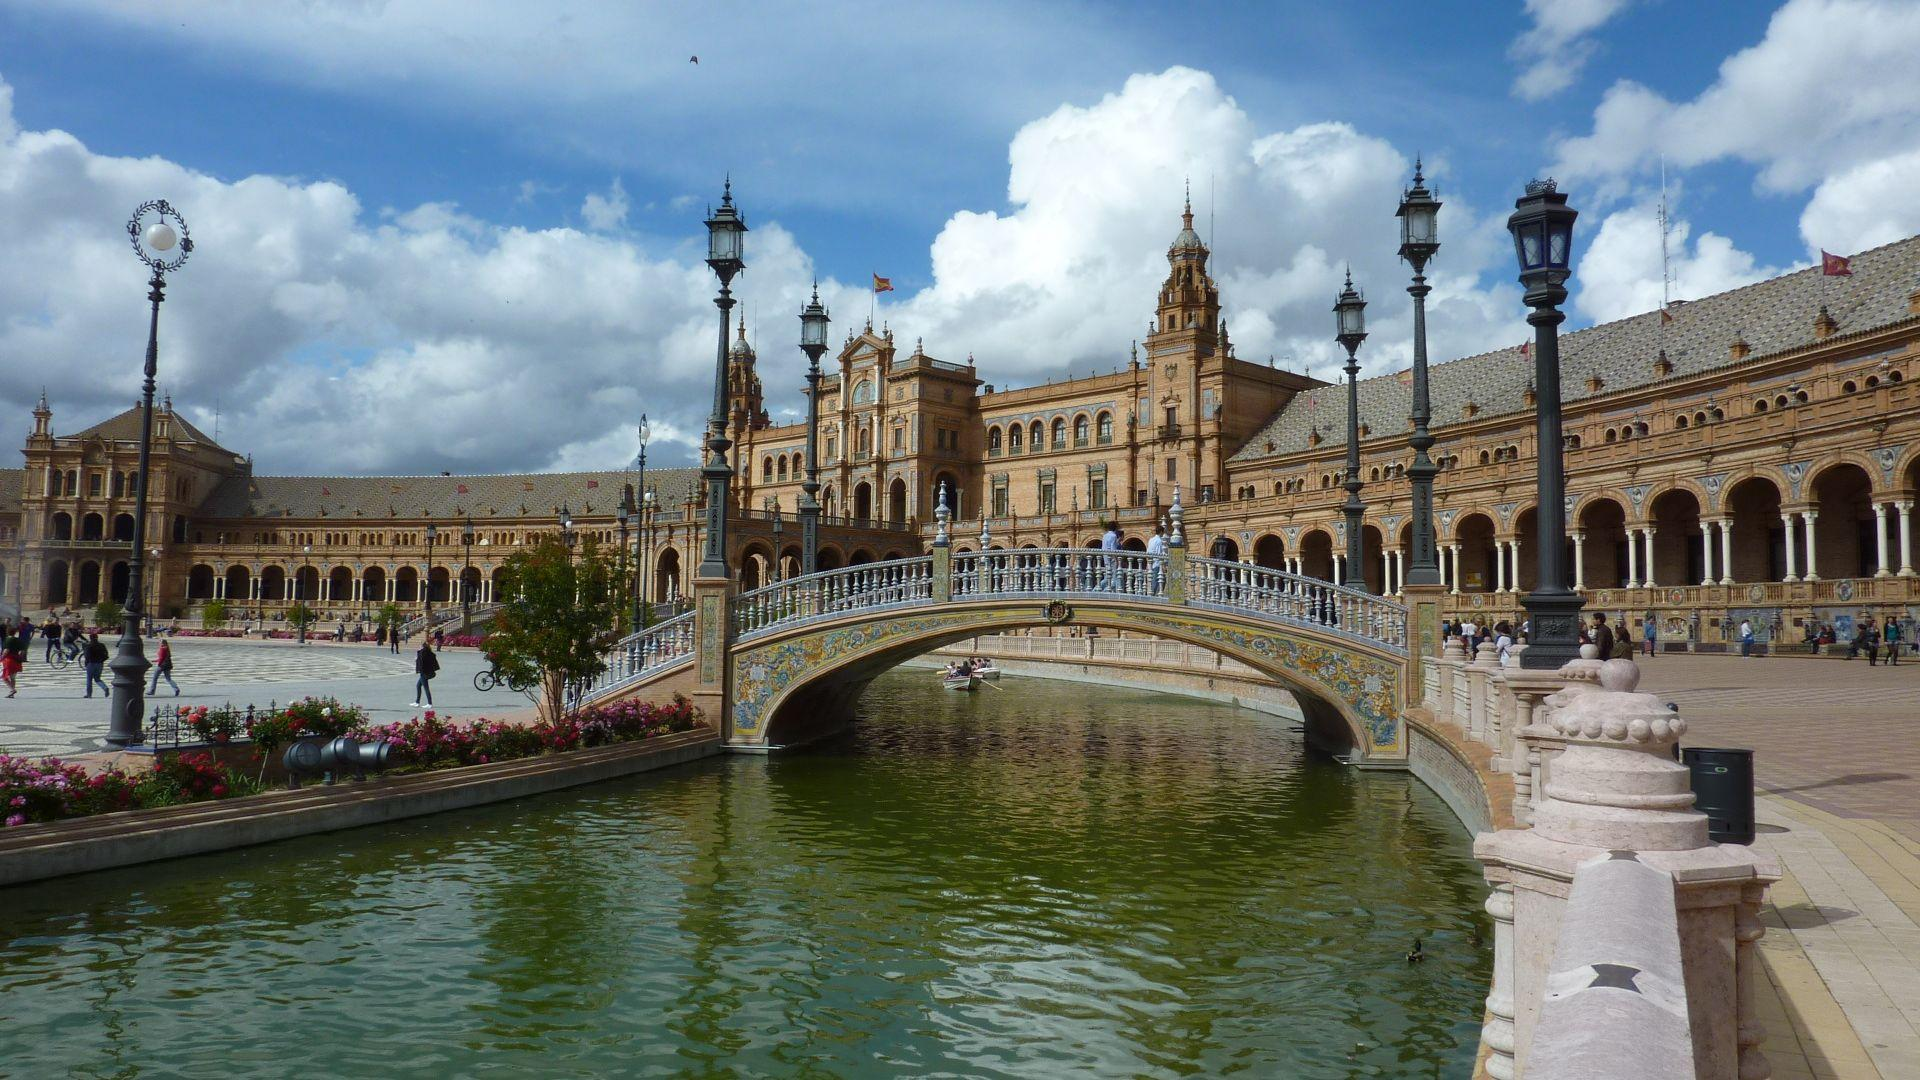 Plaza de Espana Wallpapers and Backgrounds Image